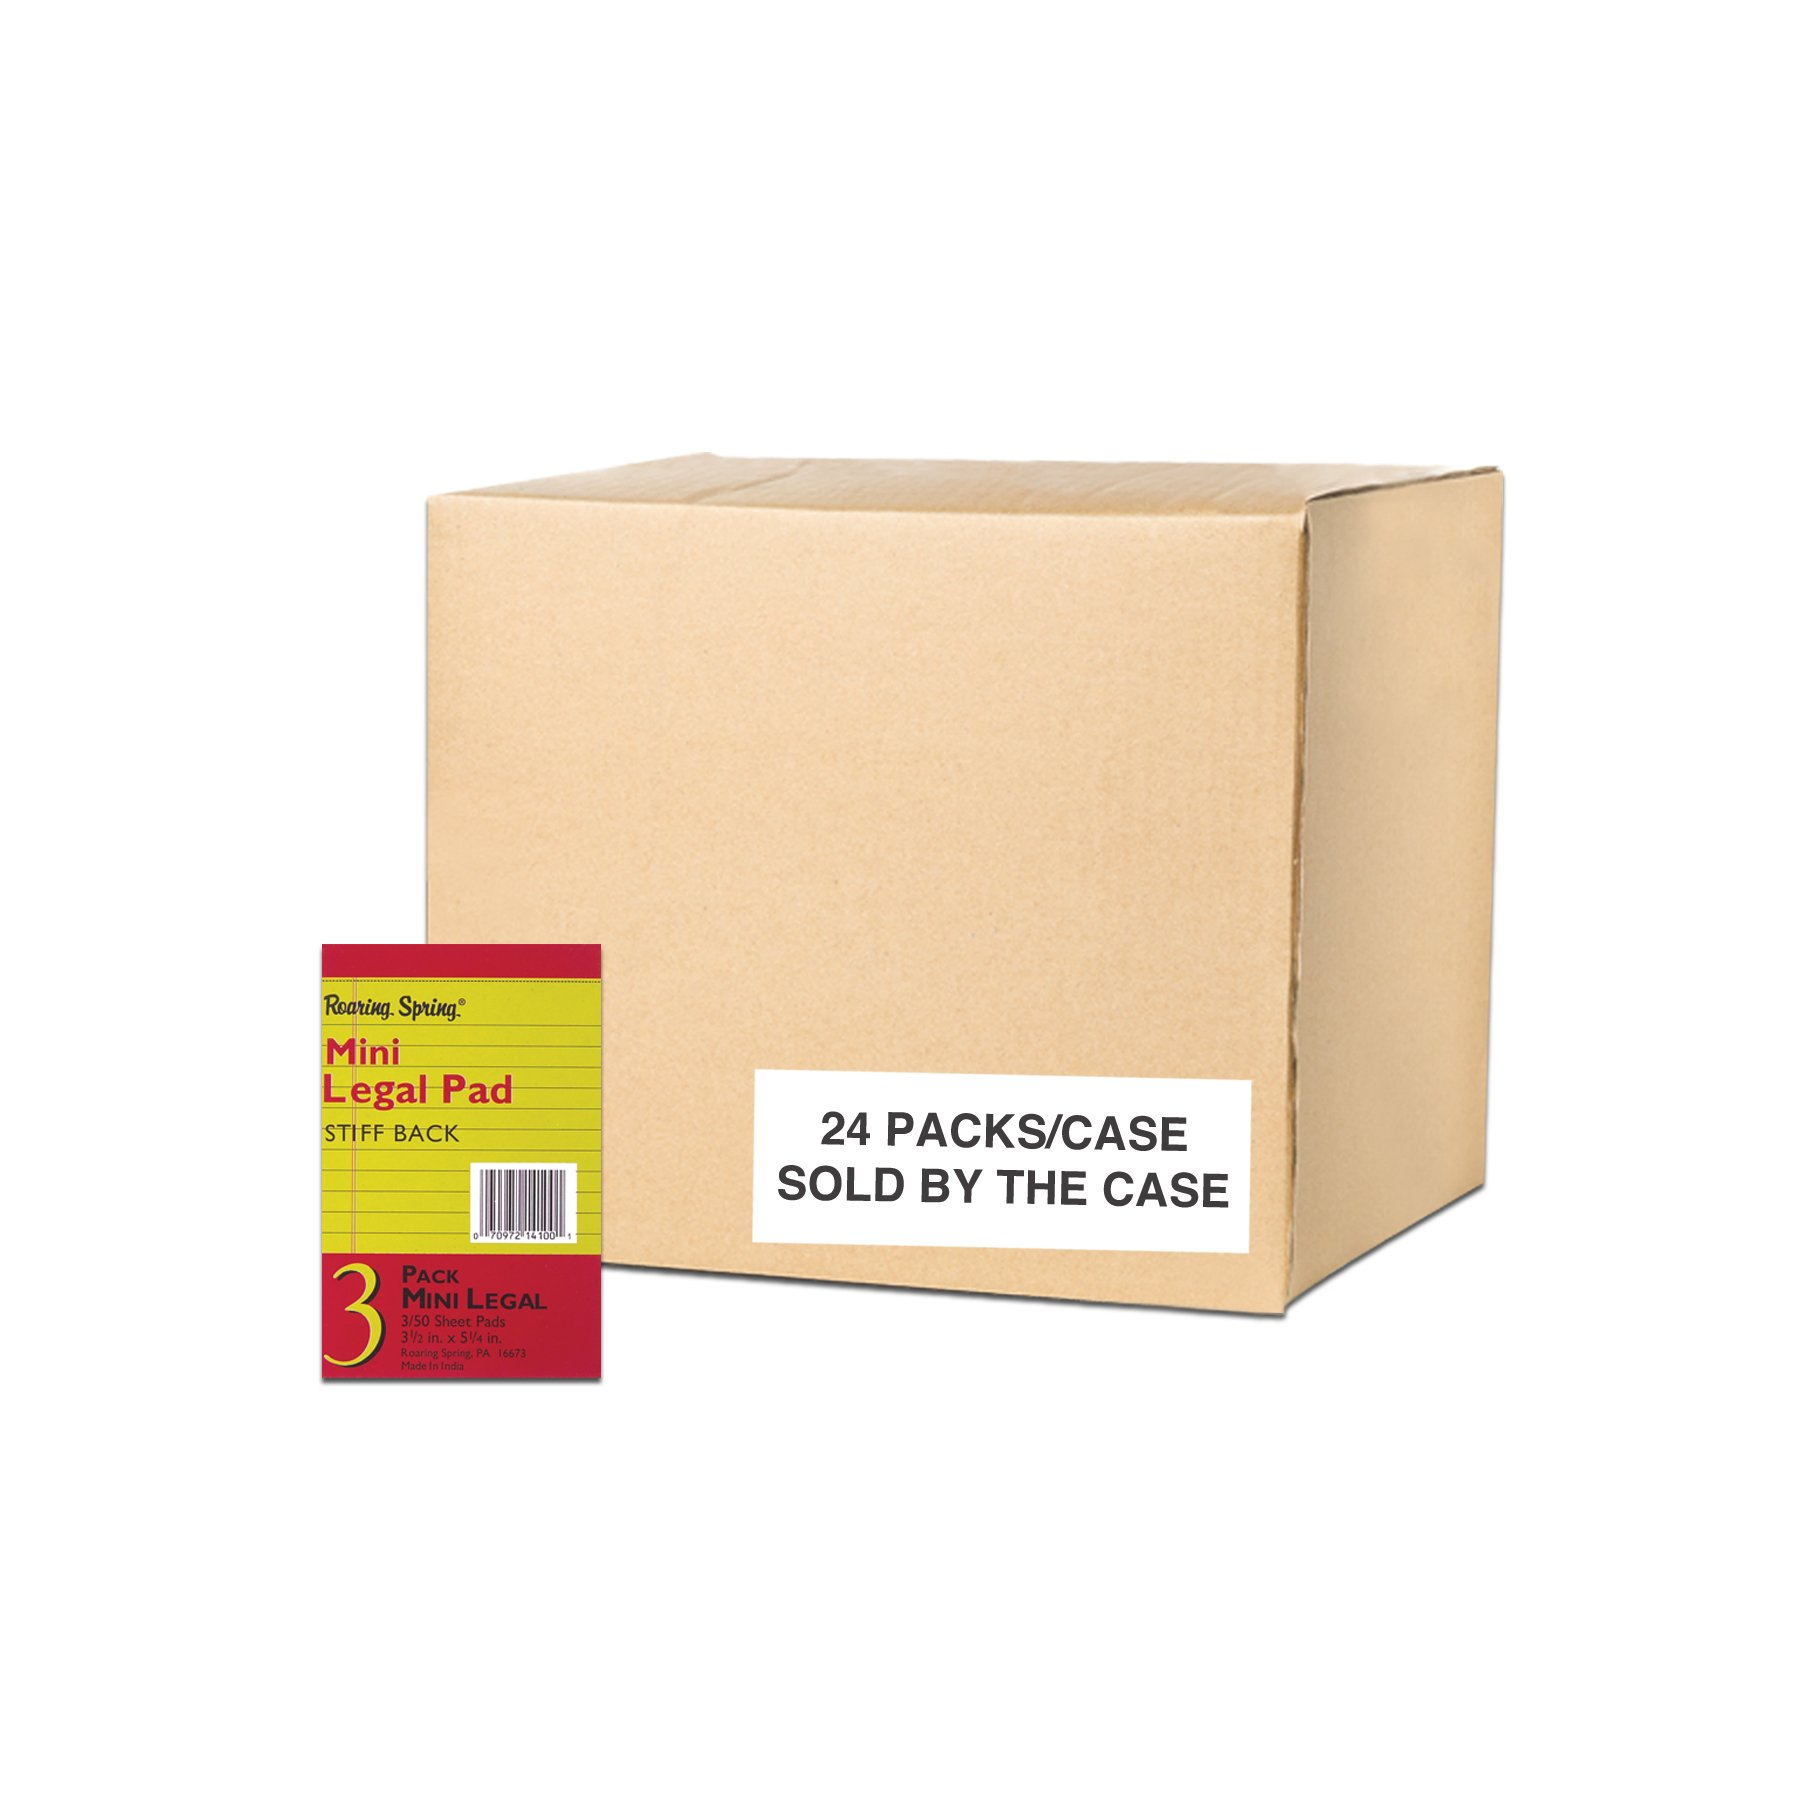 Case of 24 Packs Mini Legal Pads, 3.5''x5.25'', 50 sheets Canary Paper/Pad, 3 Pads/pack, narrow Ruled, taped, stapled and Perforated by Roaring Spring